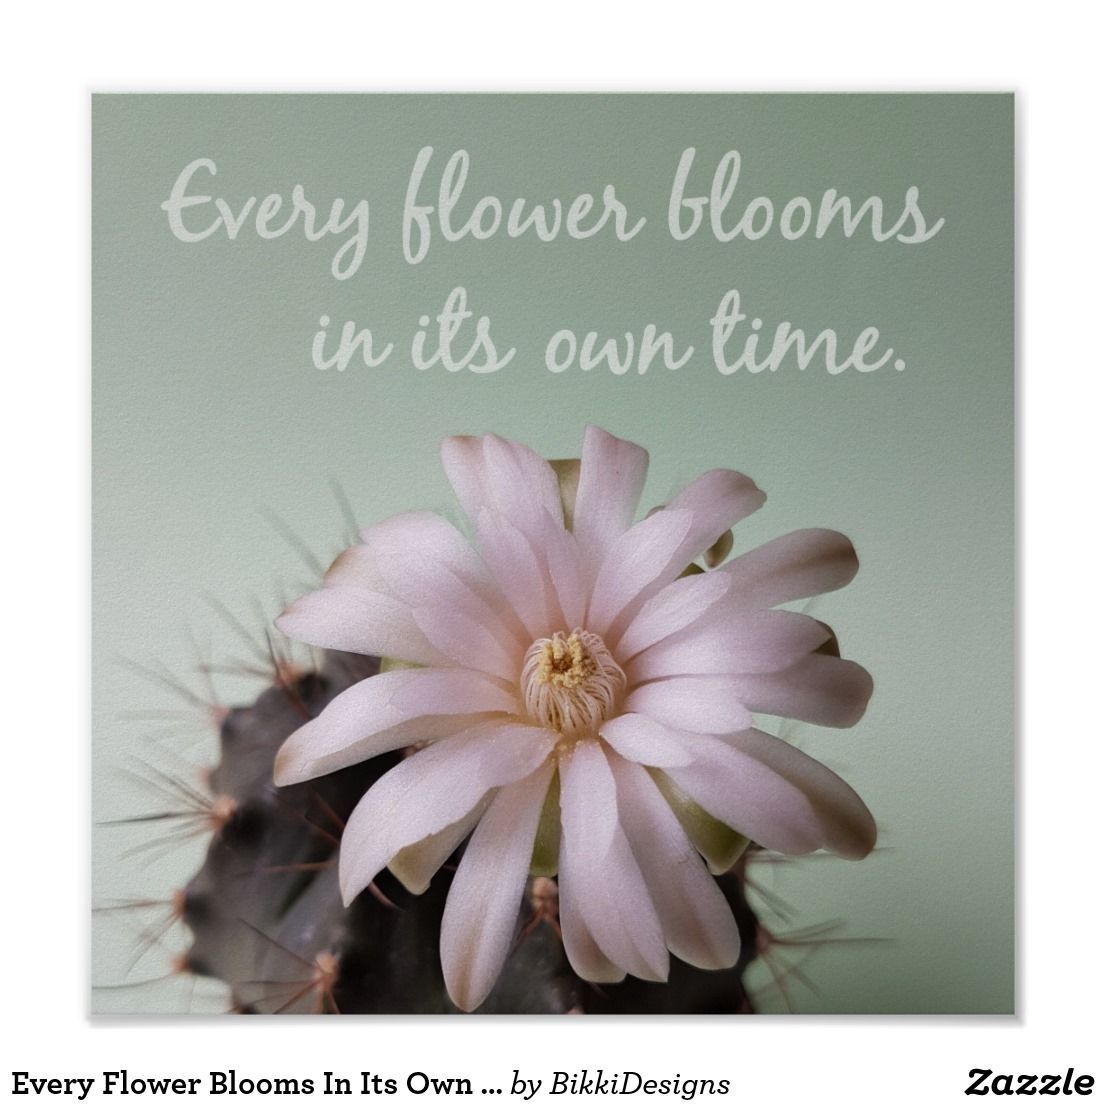 Every Flower Blooms In Its Own Time Poster Zazzle Com Bloom Quotes Flower Blooms Bloom